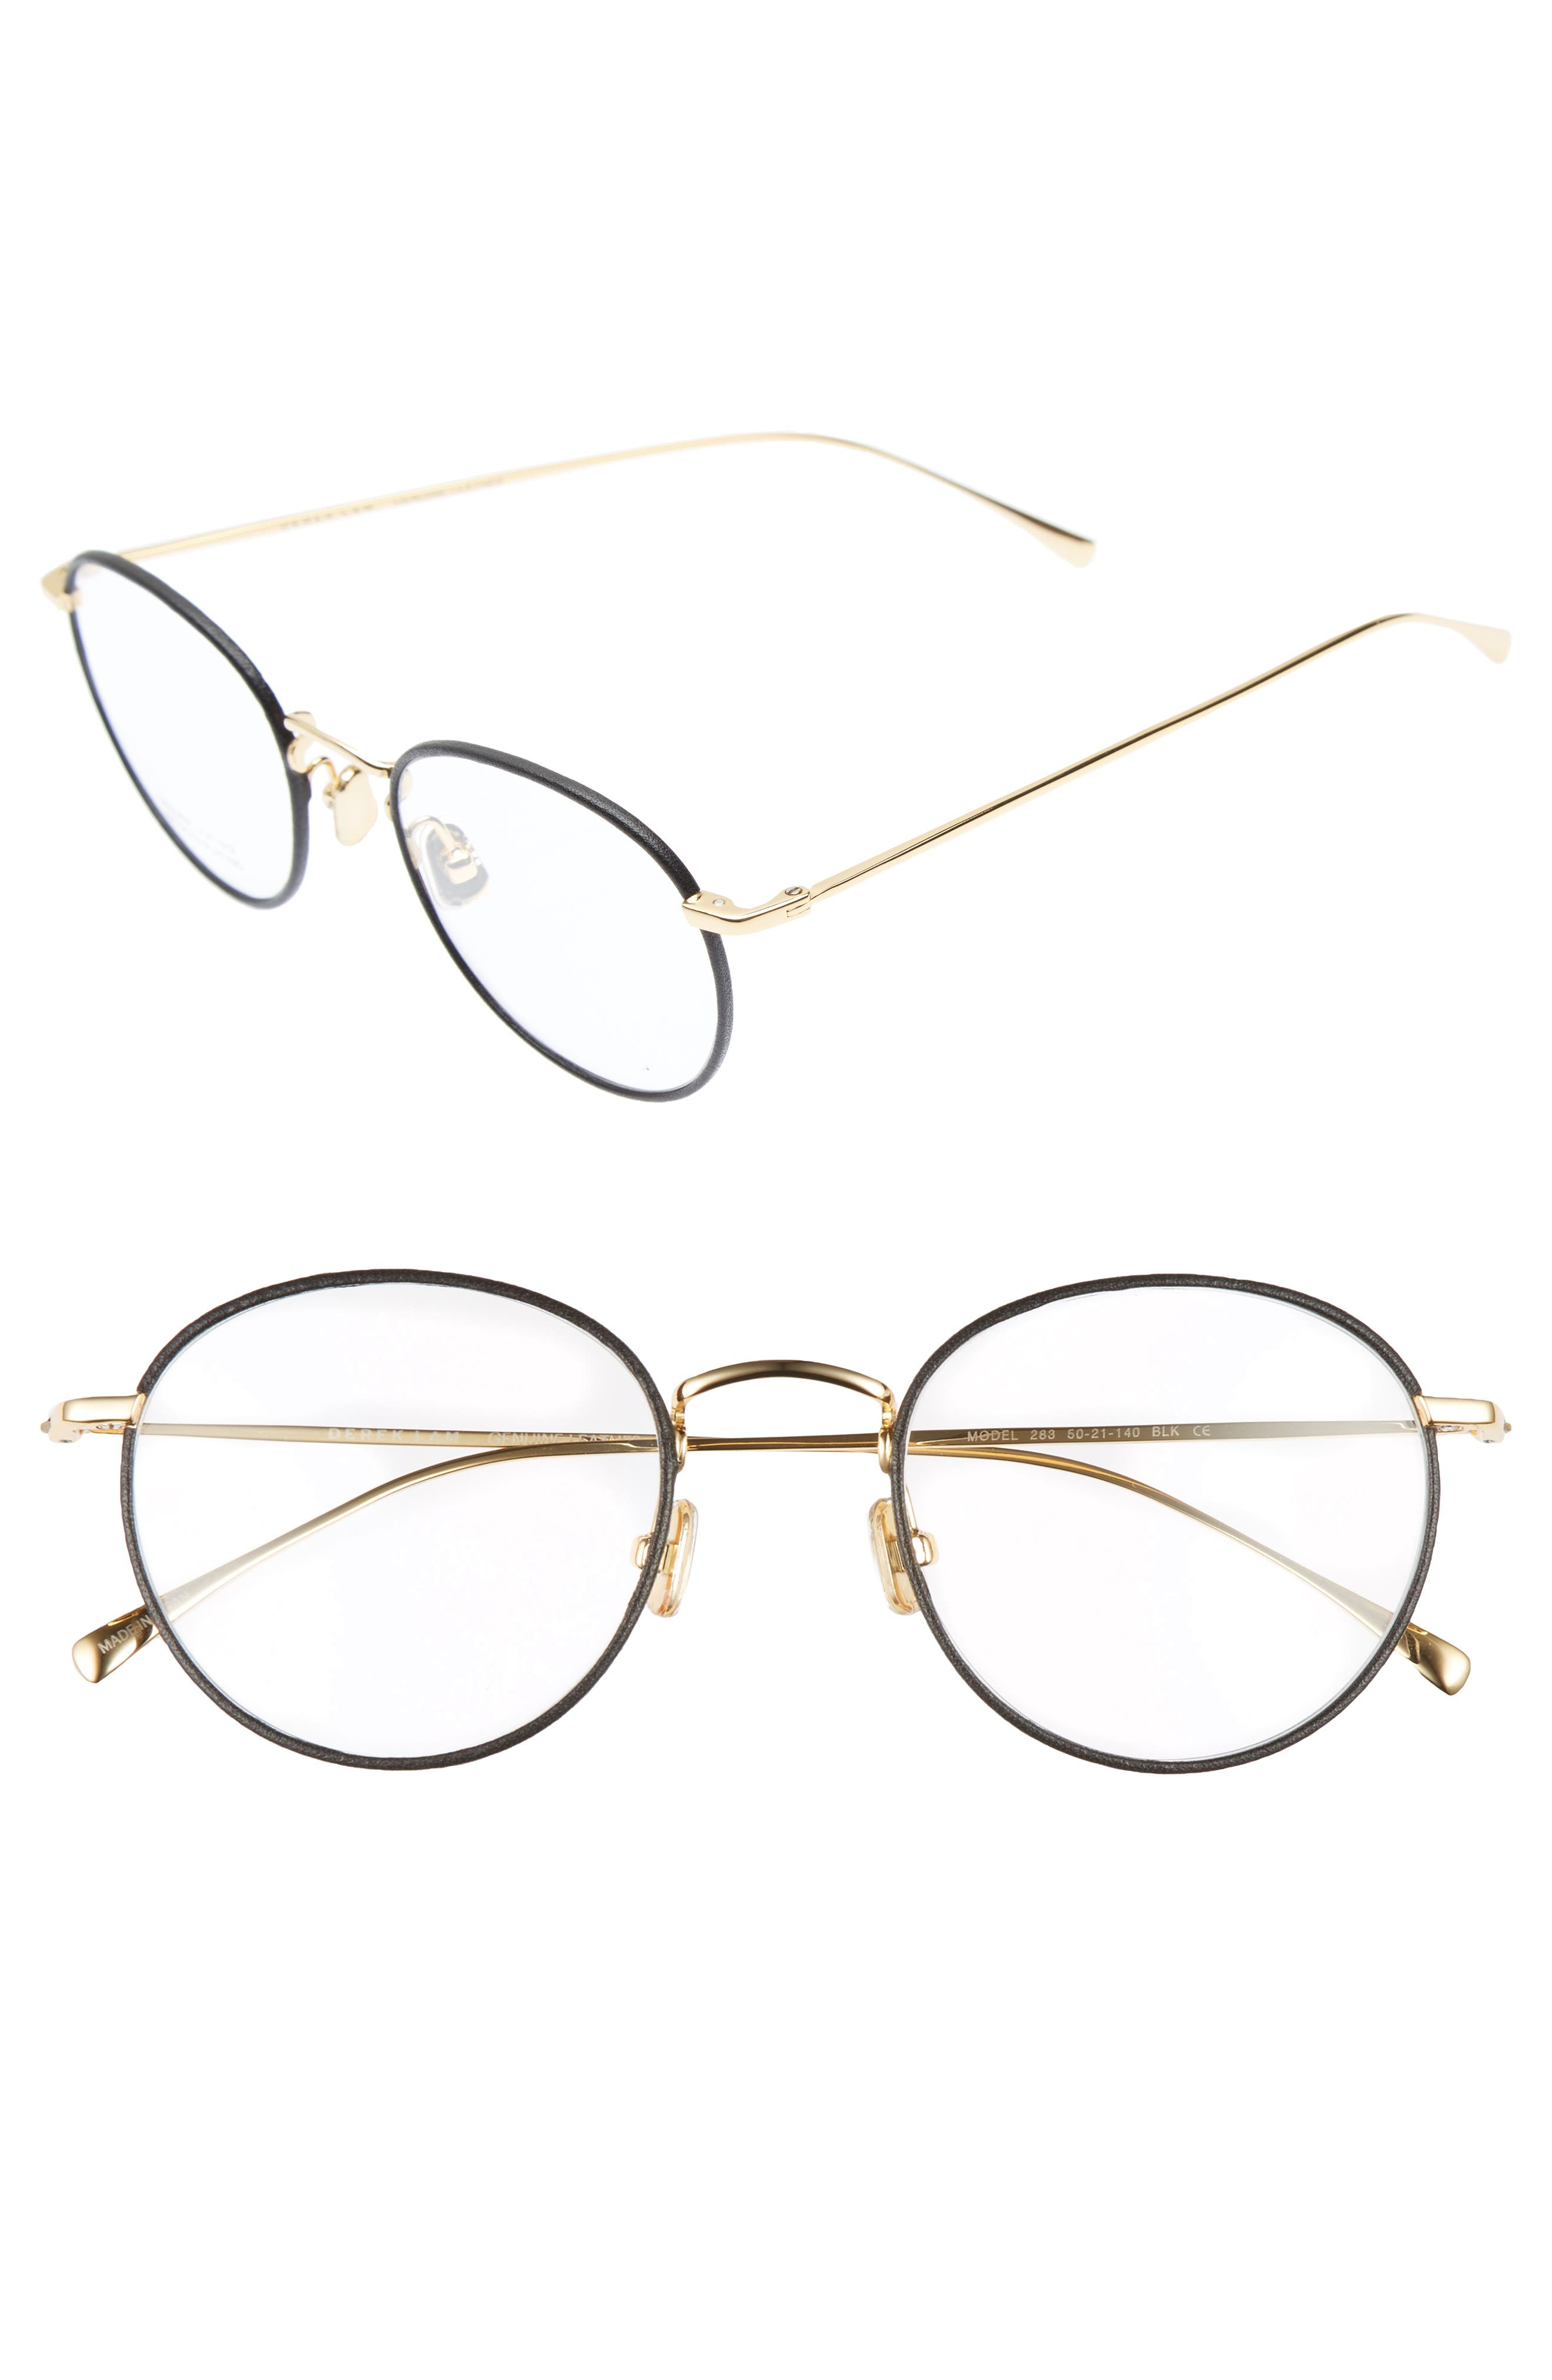 Derek Lam 50mm Optical Glasses